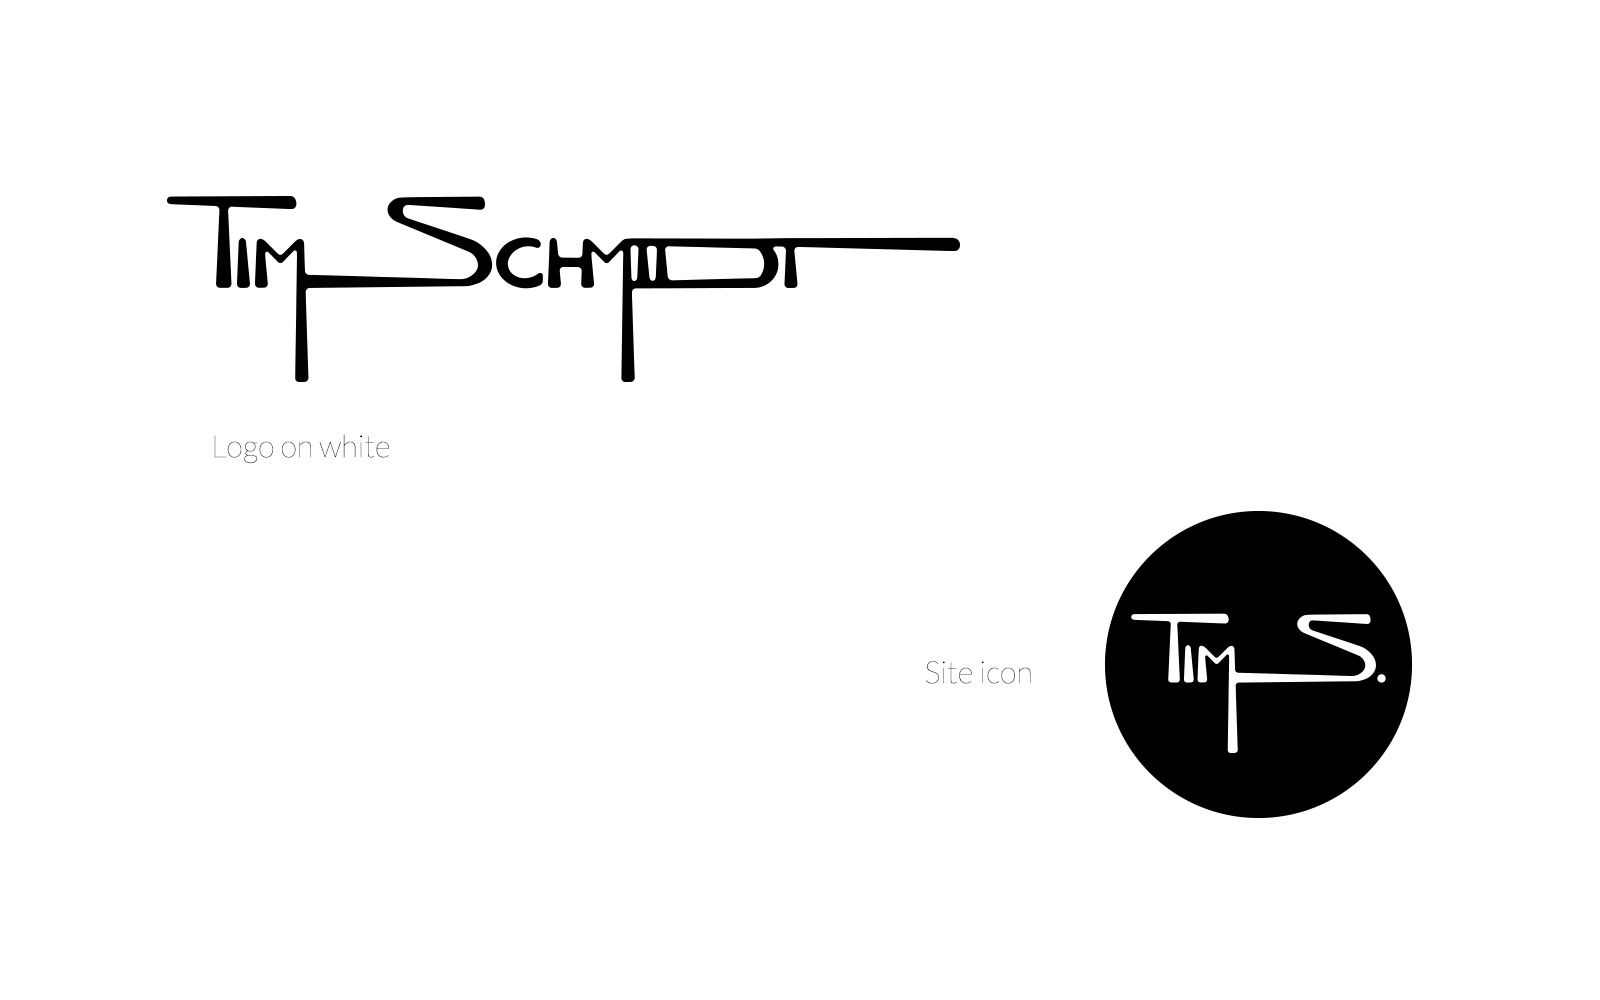 Tim Schmidt Branding, logo design + icon